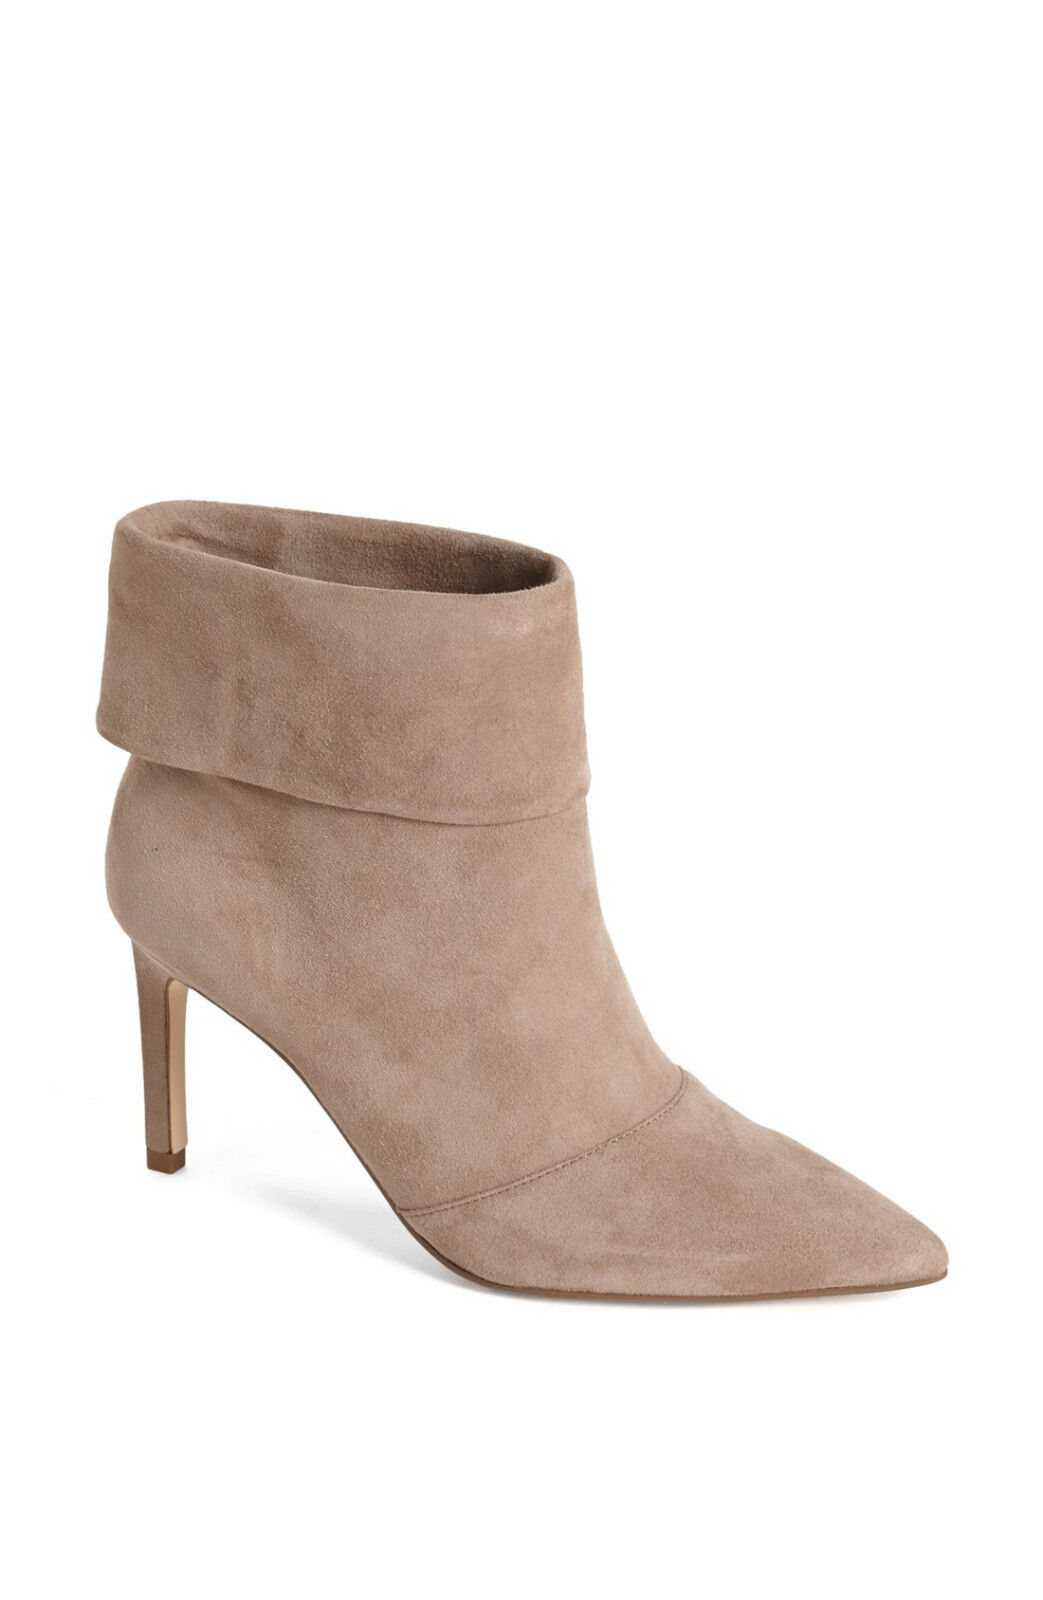 Ivanka Trump Beige Taupe 9 Suede High Heel Pointed Toe Bootie Ankle Boot Anders